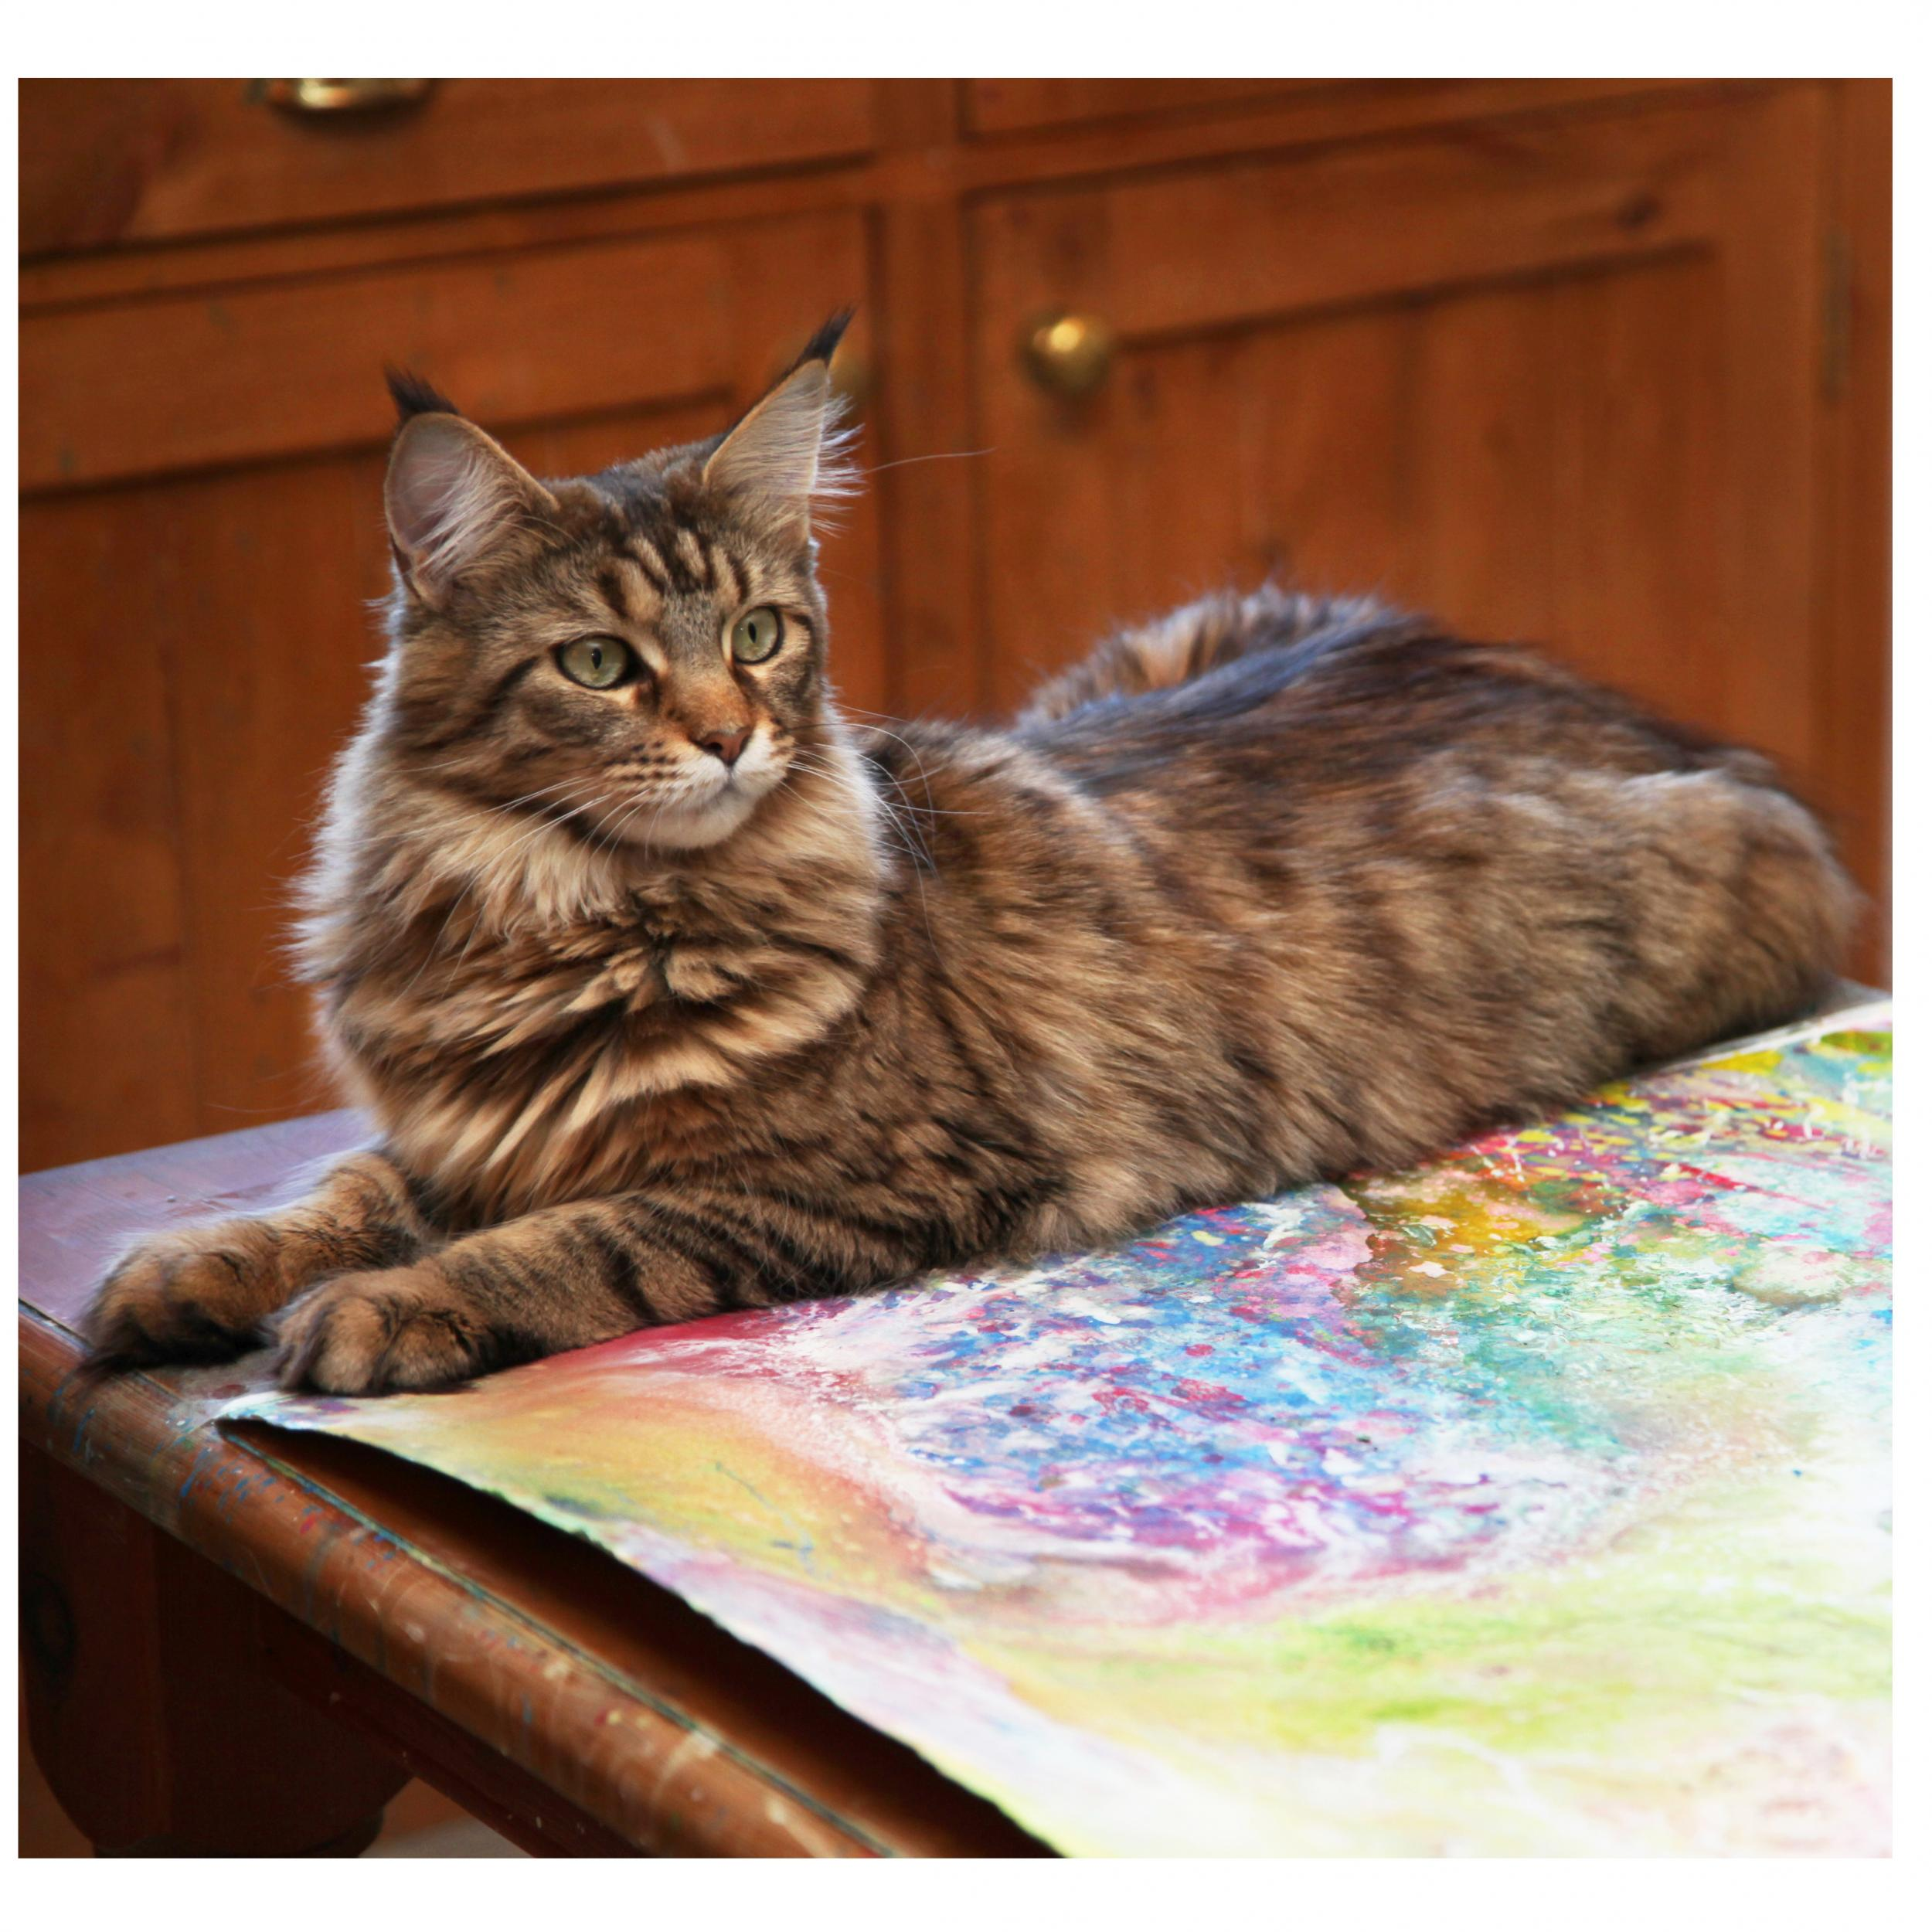 Thula lying on the painting table